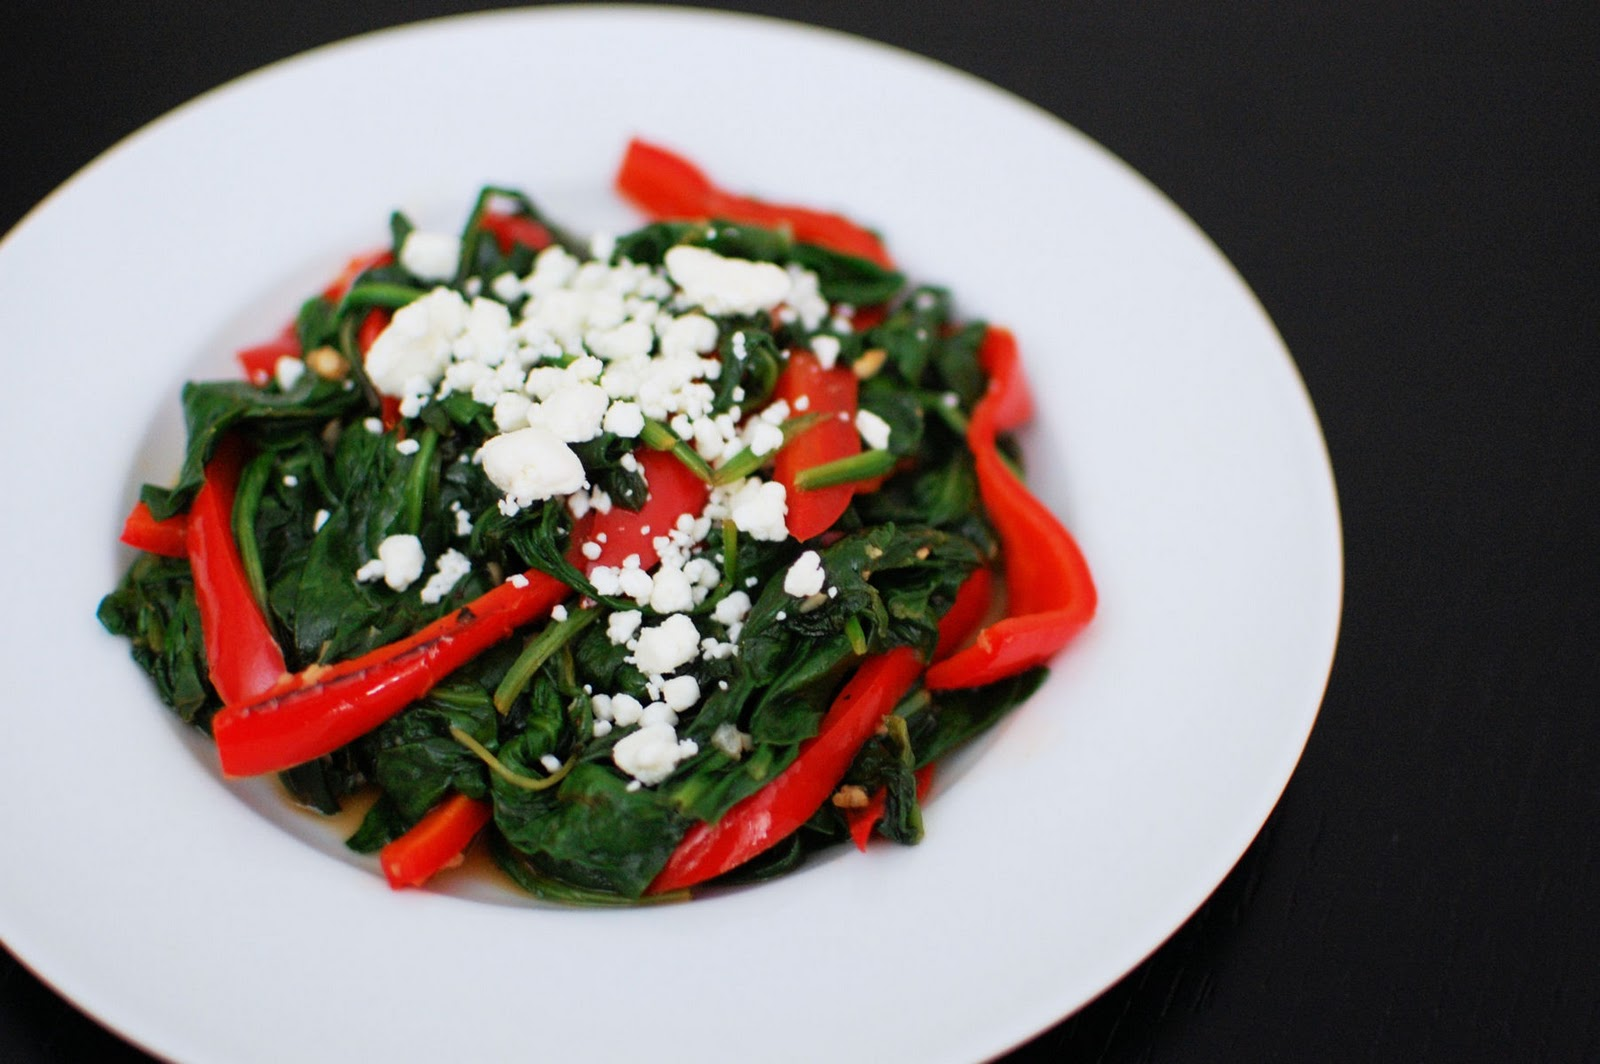 Spinach with Red Peppers